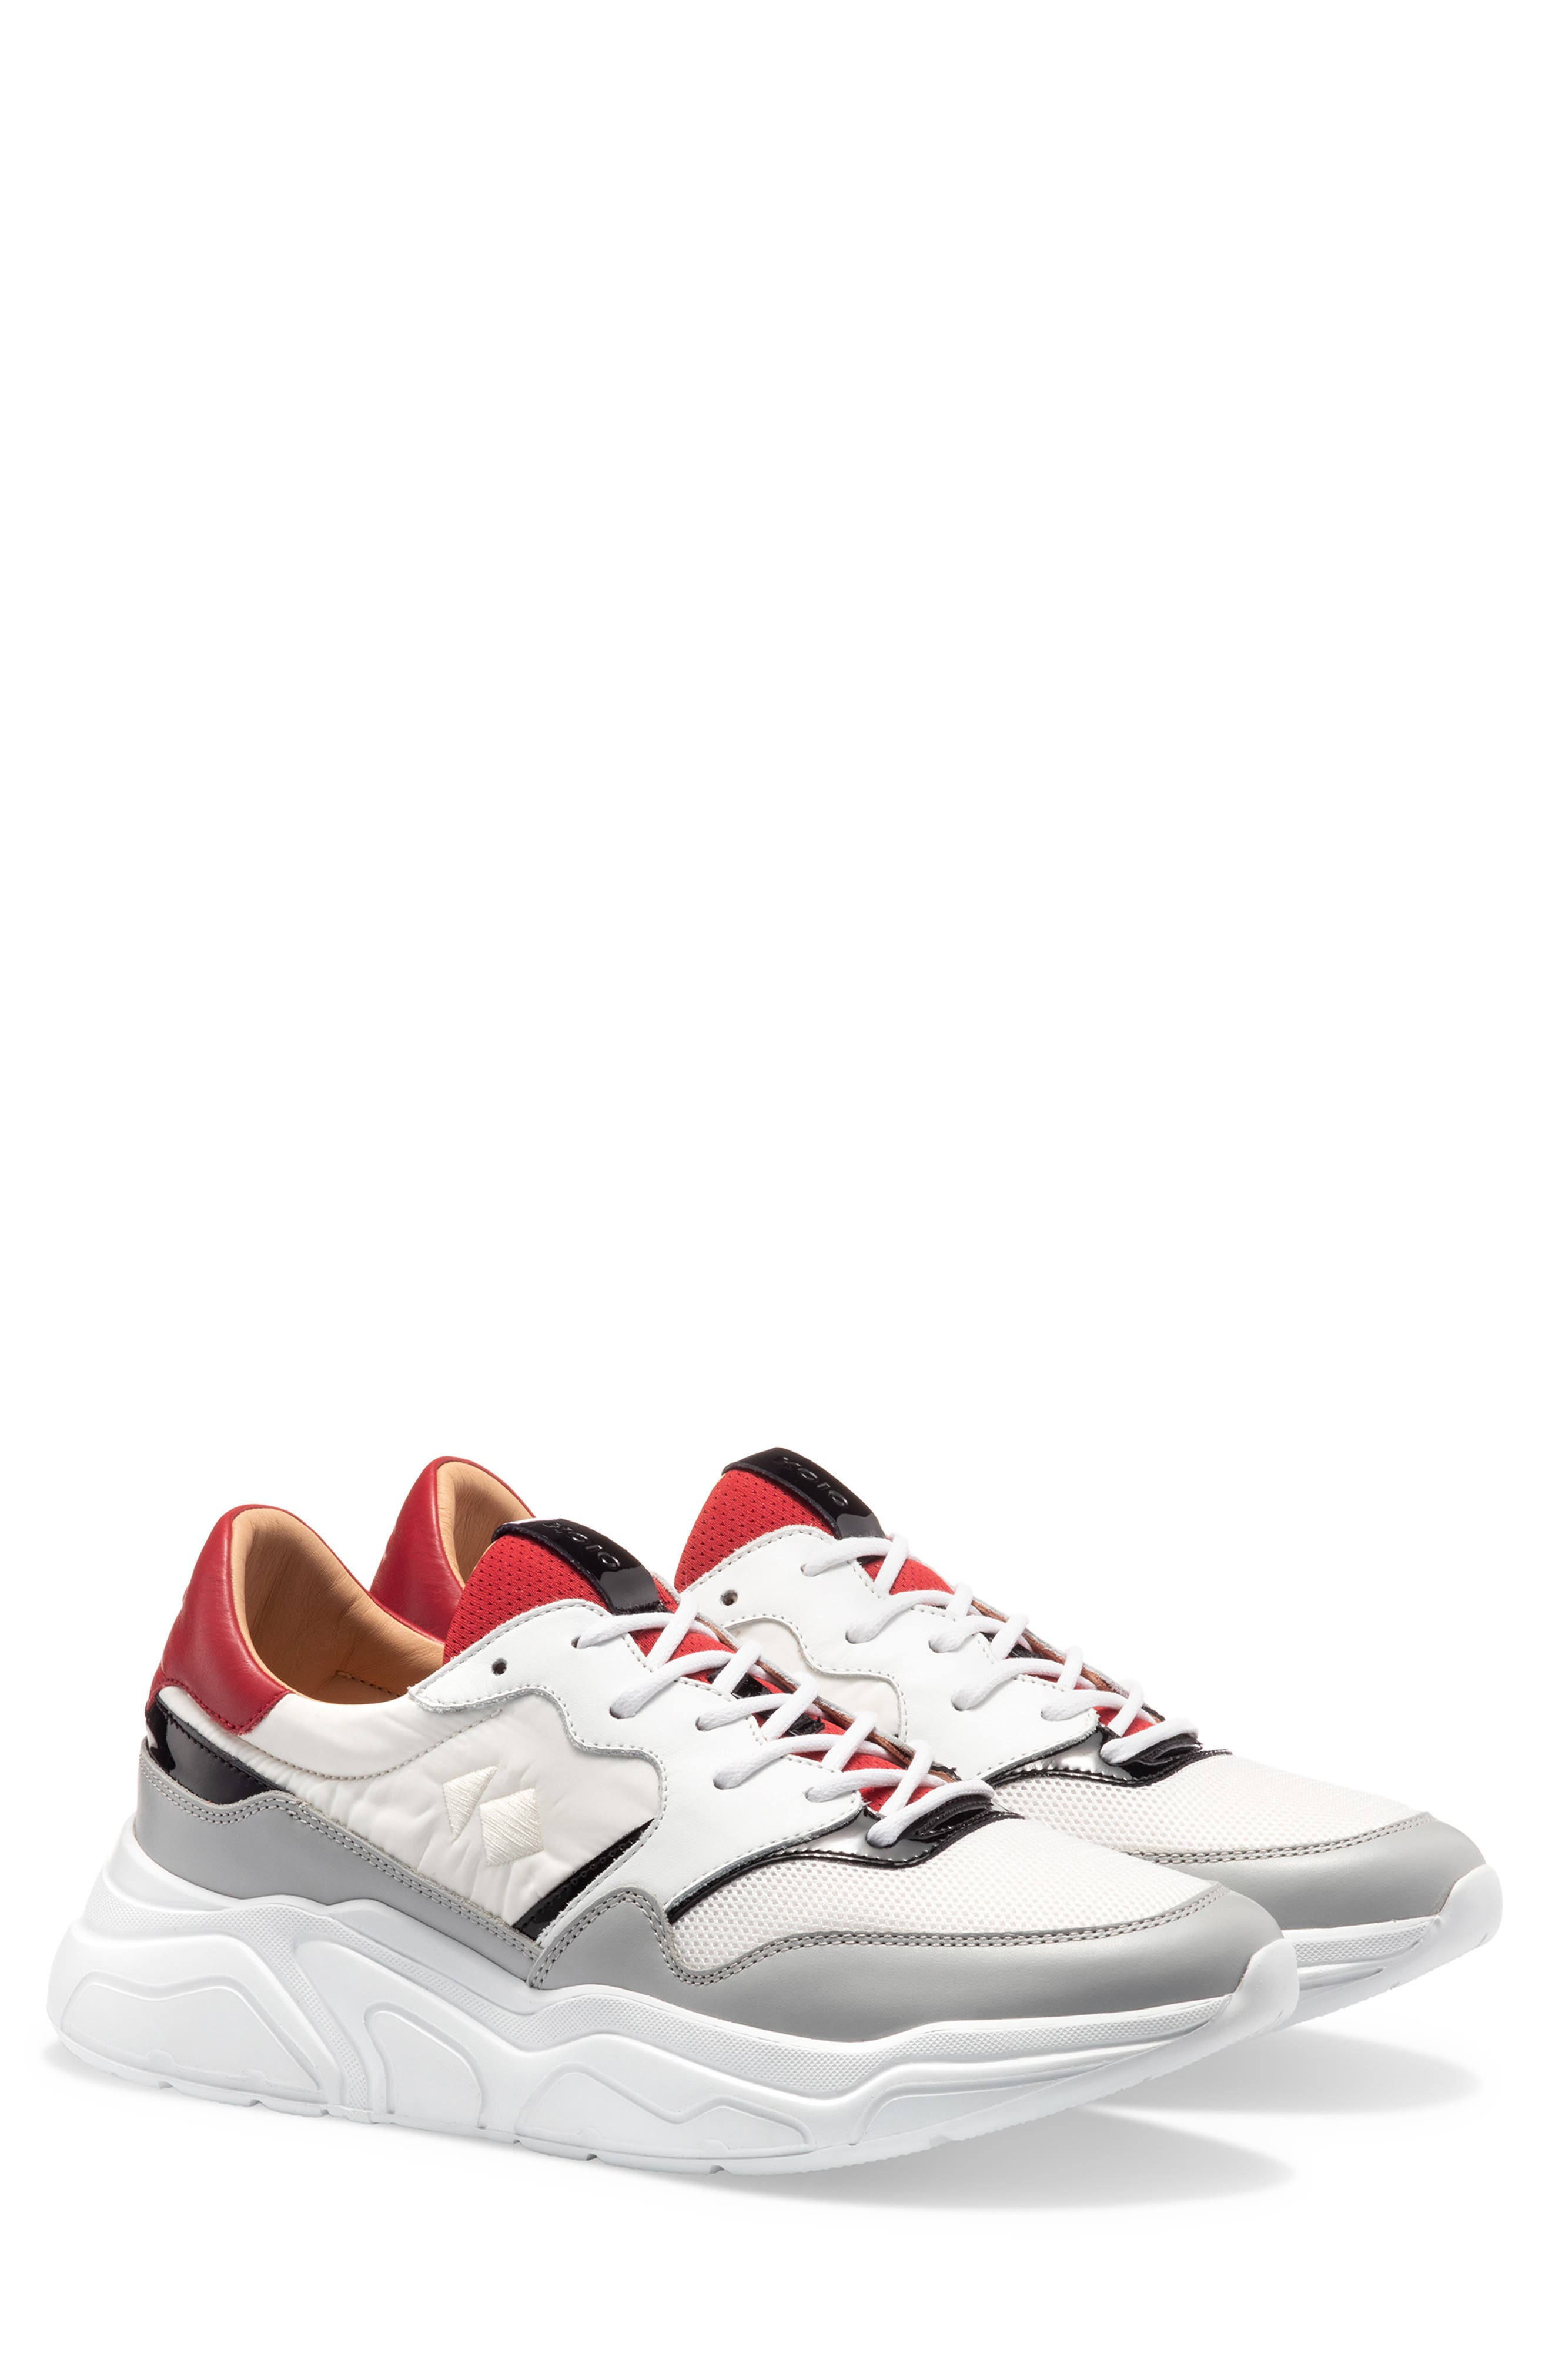 KOIO Avalanche Sneaker in Red/ Gray